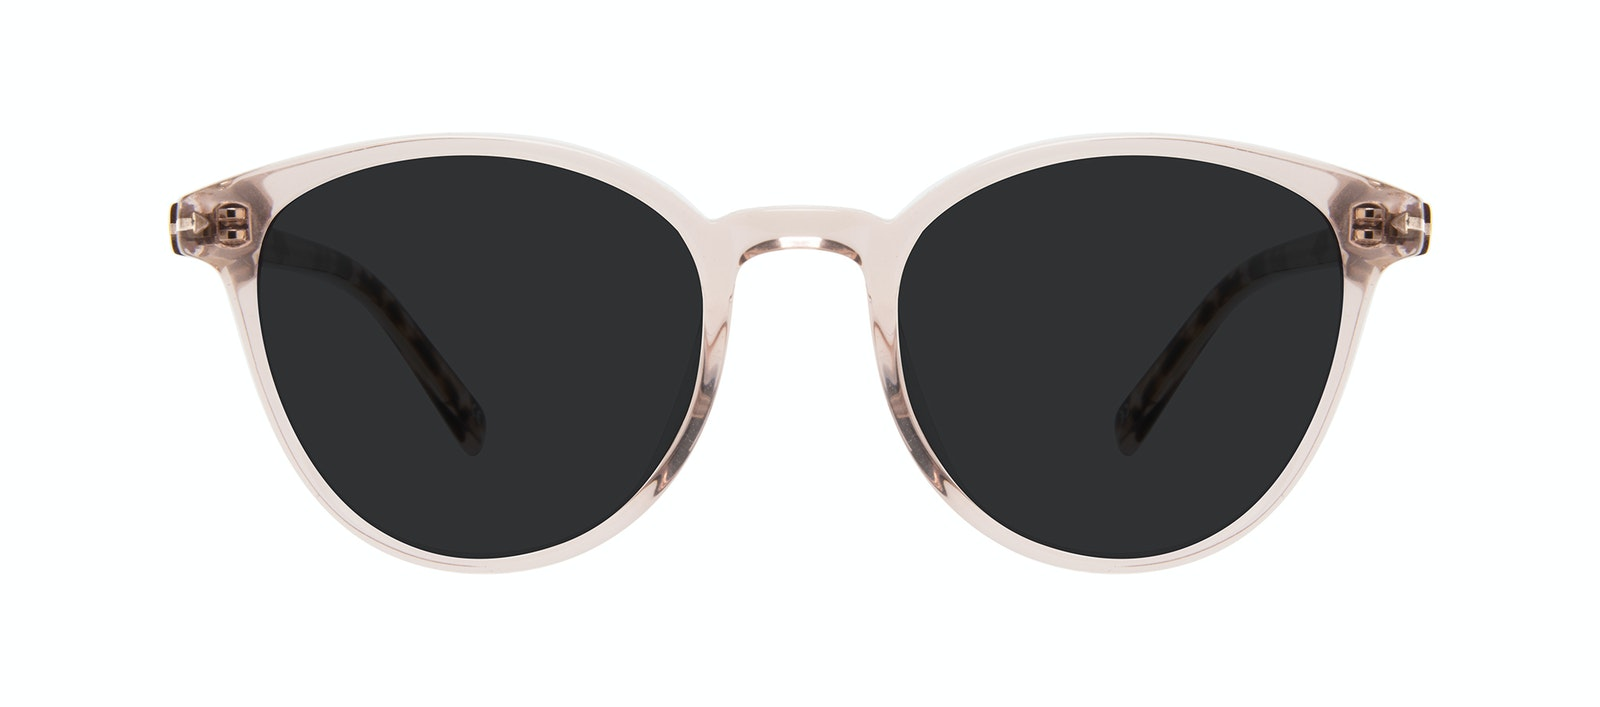 Affordable Fashion Glasses Round Sunglasses Women London Blush Front